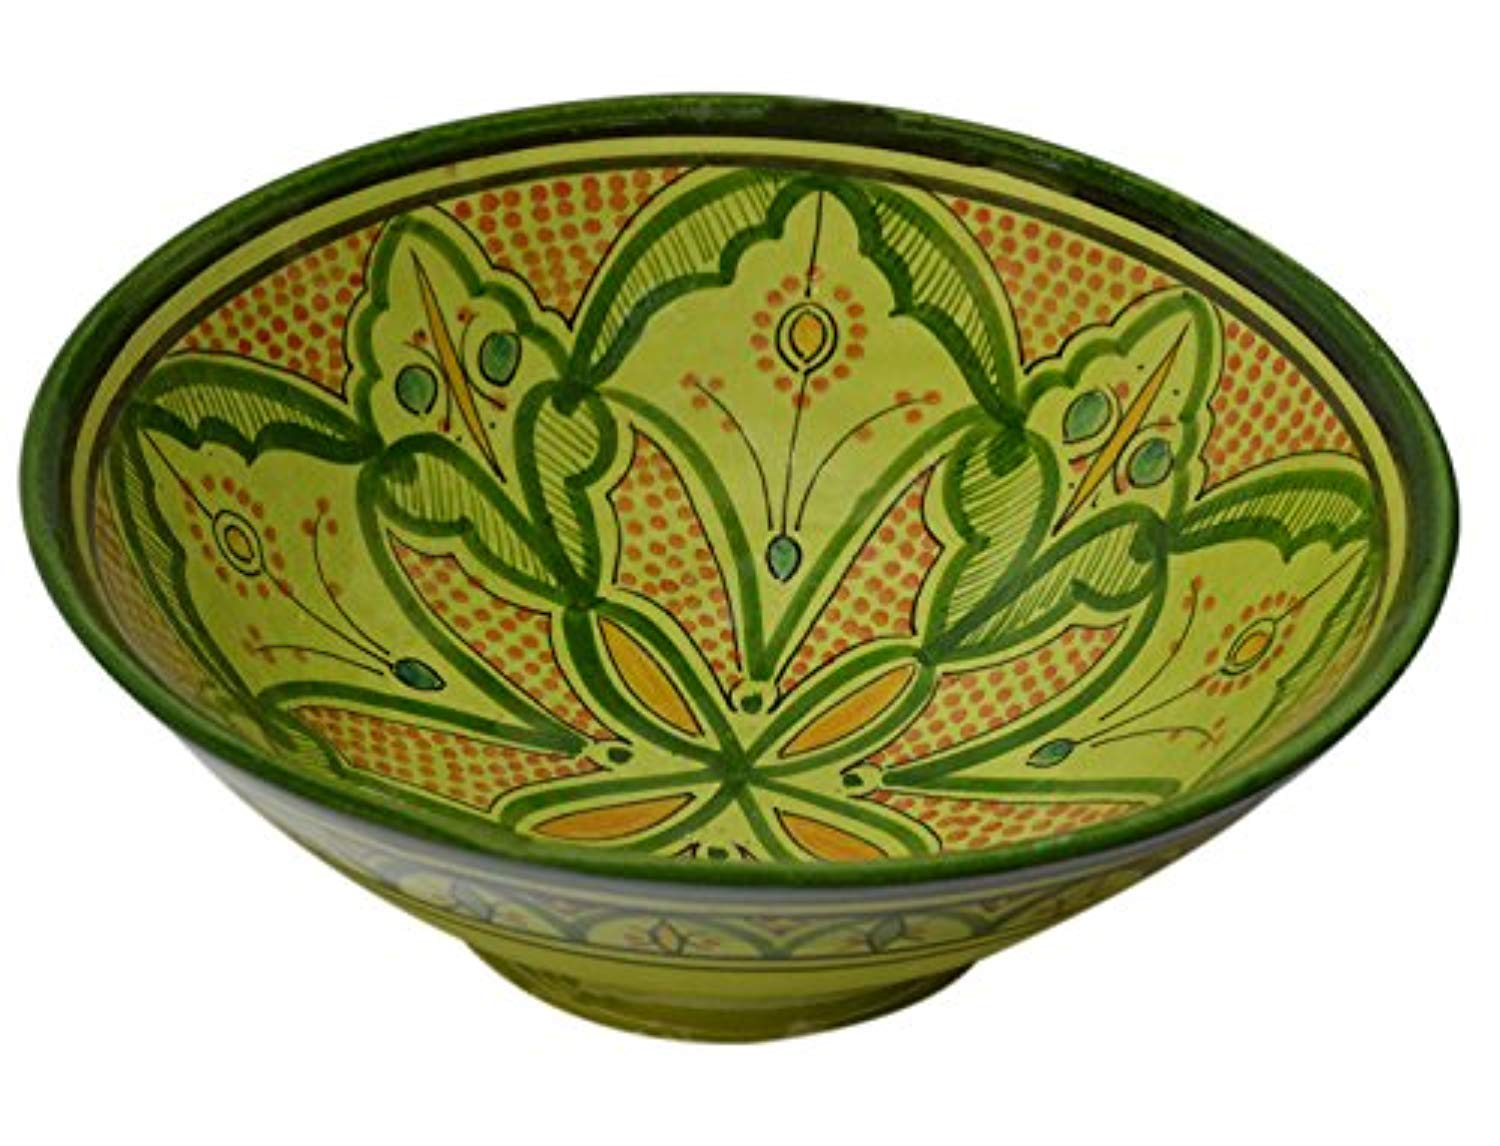 Ceramic Bowls Moroccan Handmade Serving Bowl Green Large 12 Inches Across - Ufumbuzi - Home